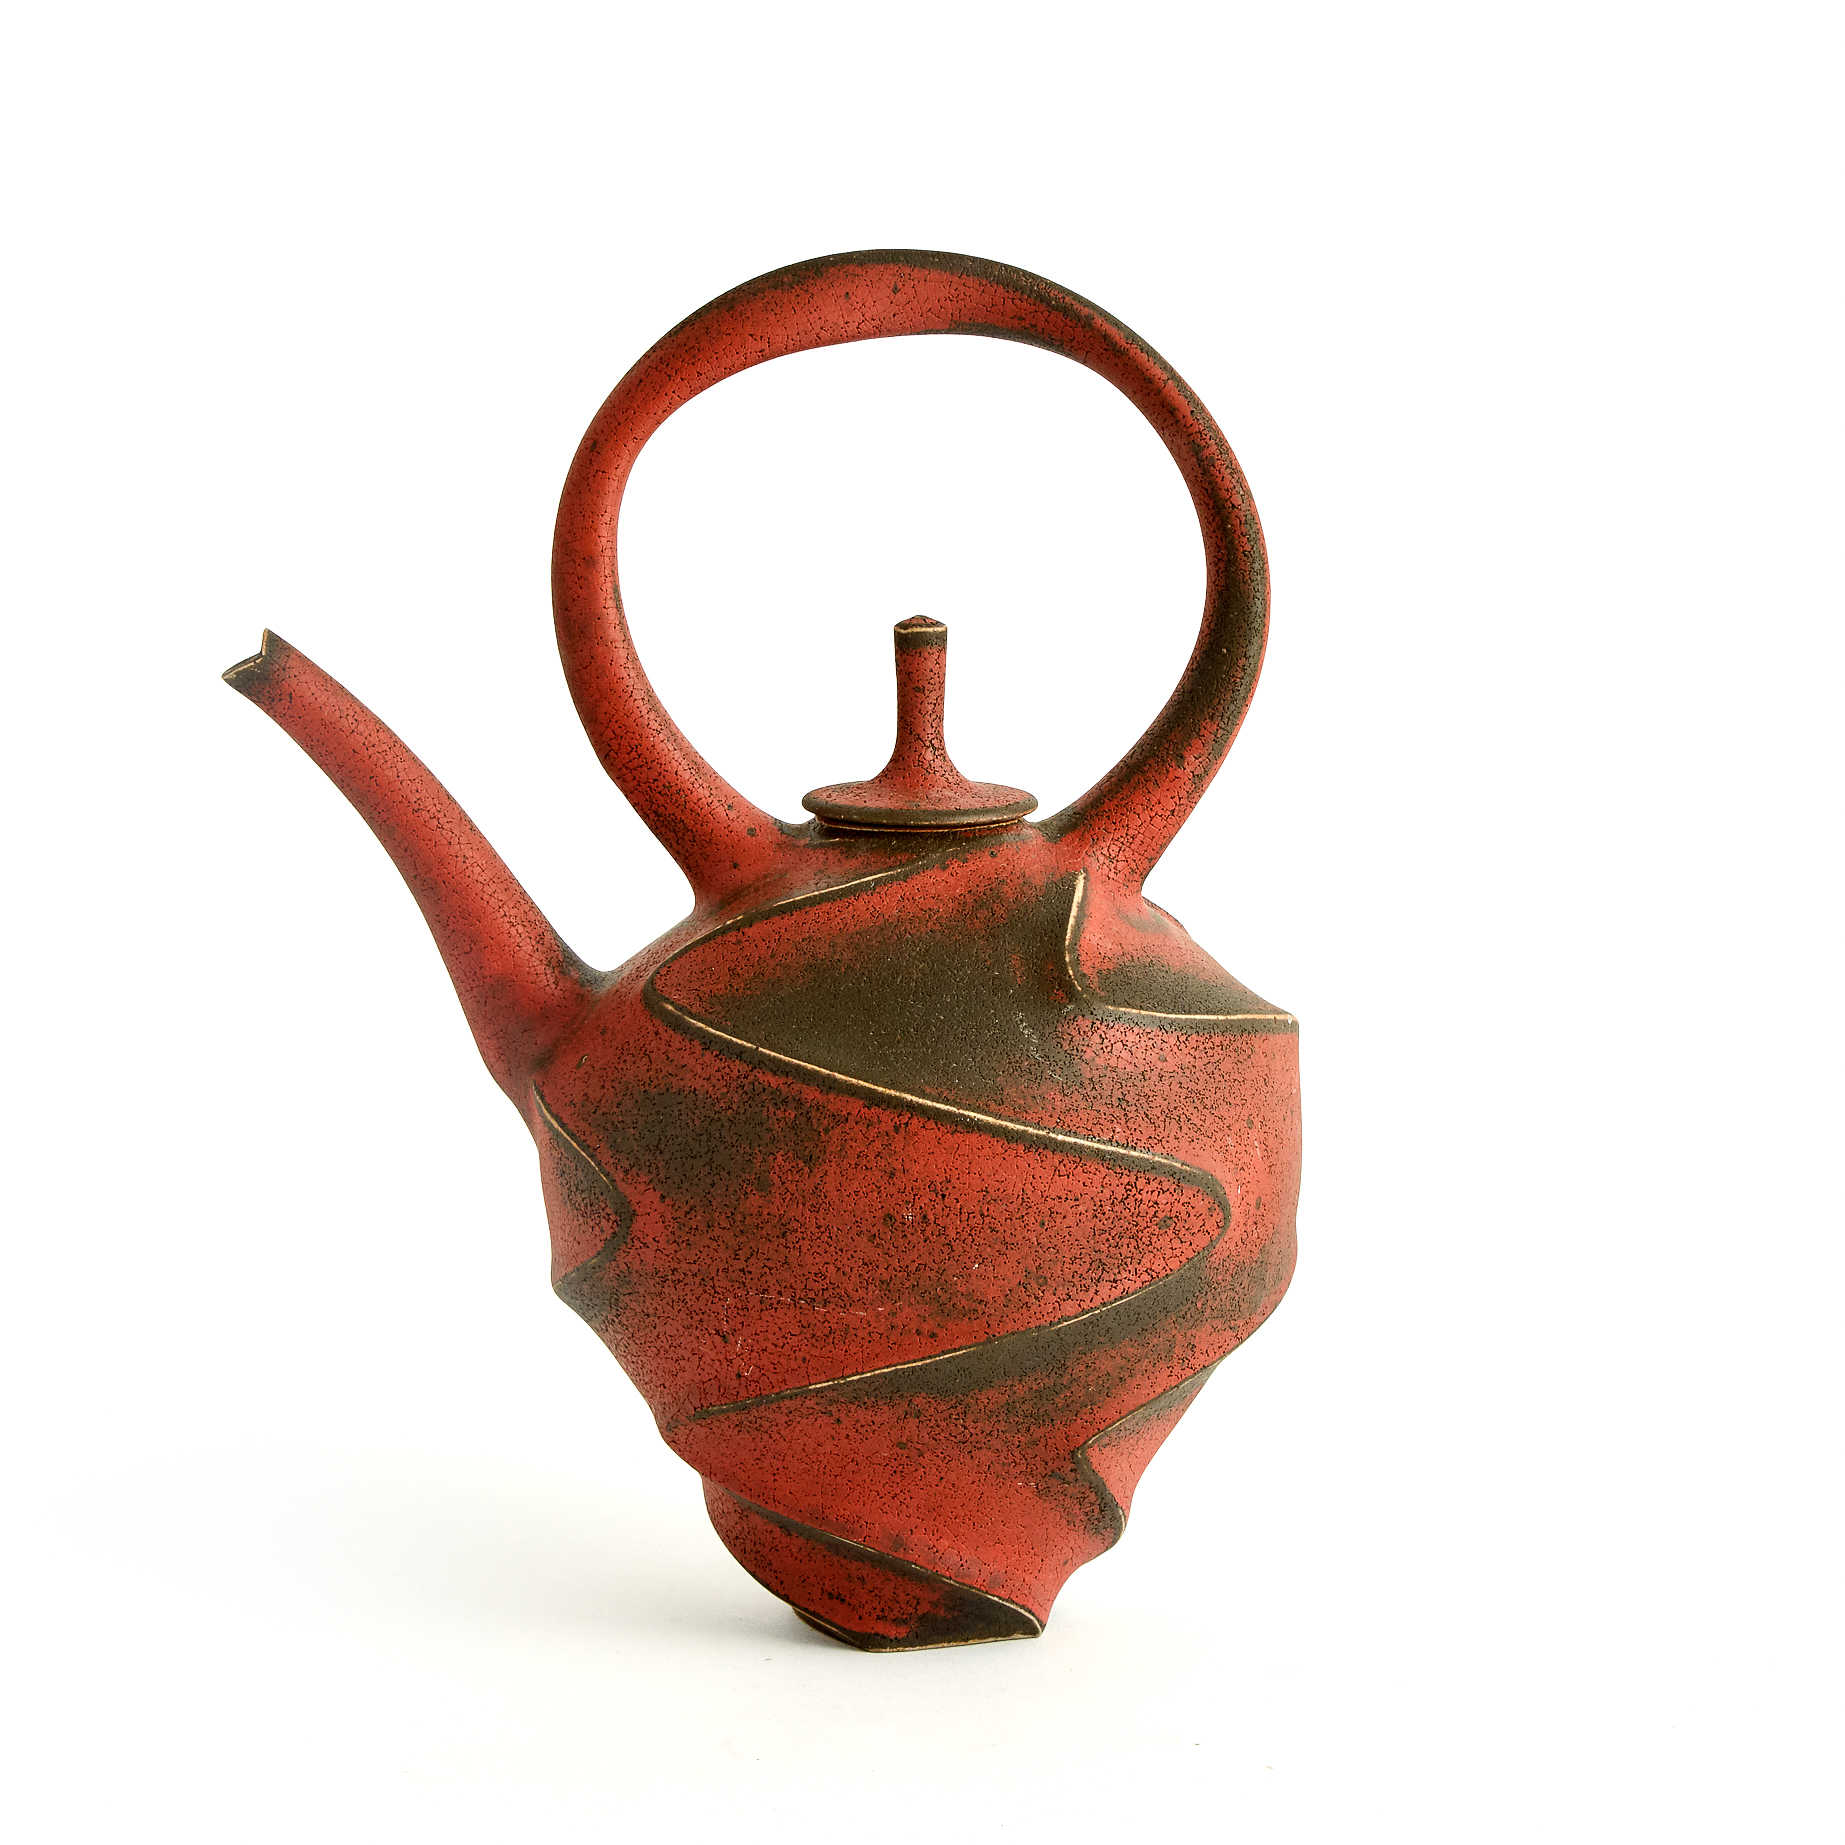 Jim Connell (American, b.1951), Red and Black Stoneware Teapot, 2008